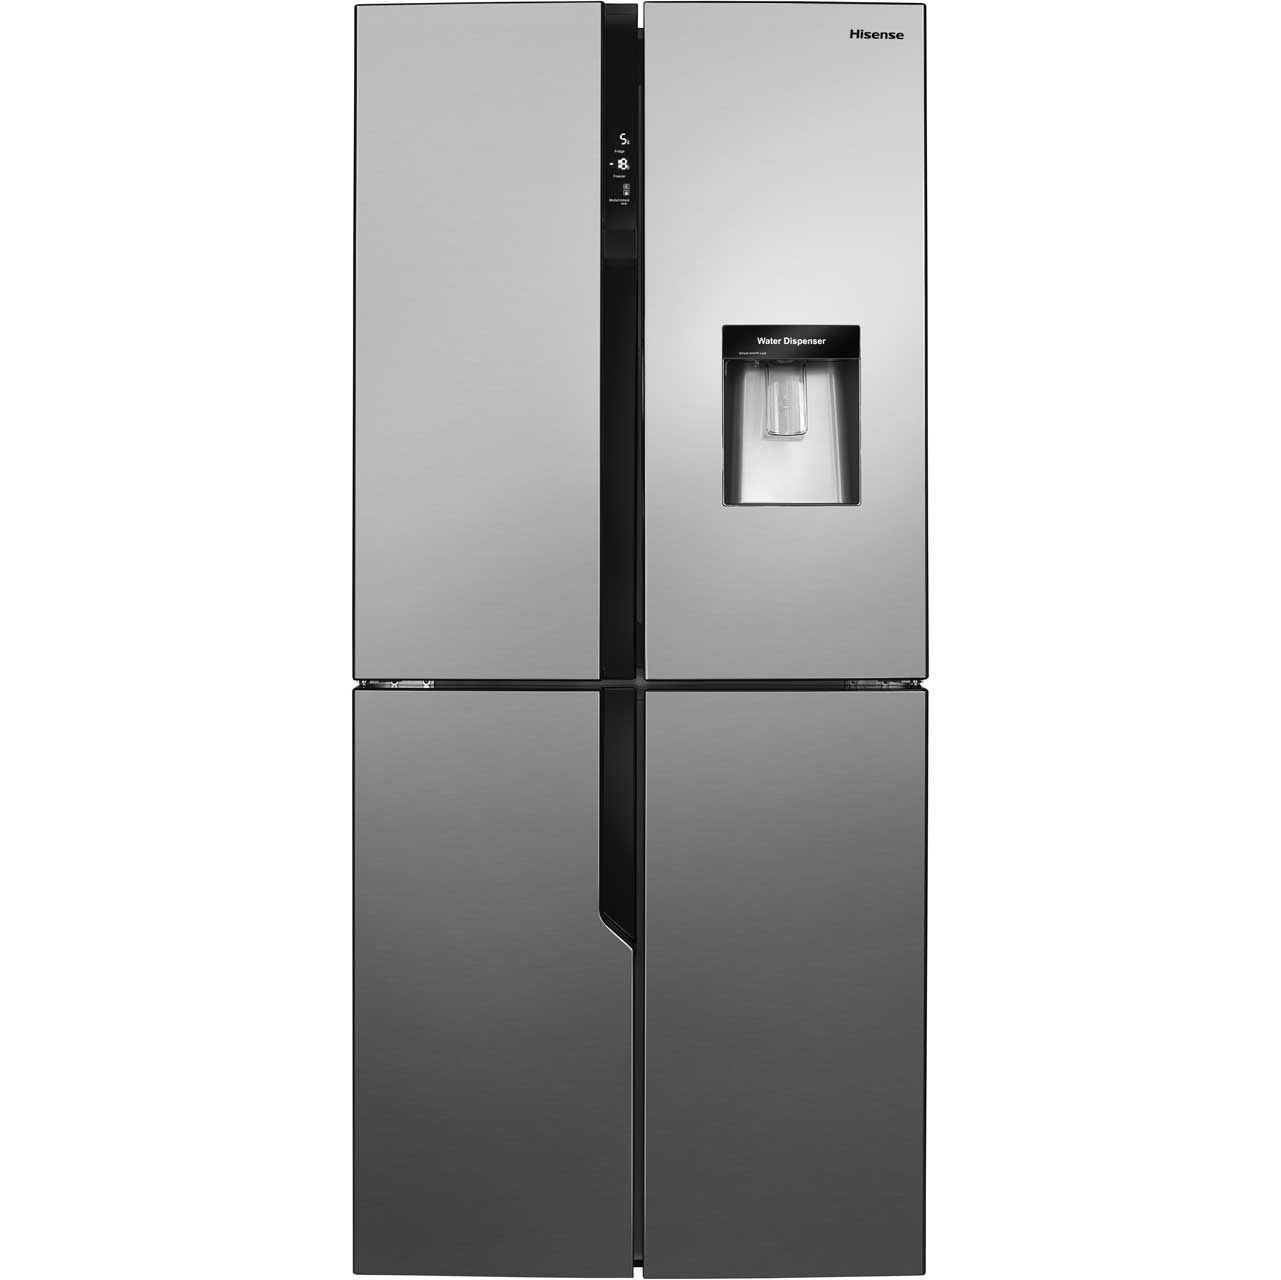 fmn431w20c ssl   hisense 70cm depth american fridge freezer   ao com fmn431w20c ssl   hisense 70cm depth american fridge freezer   ao      rh   pinterest com